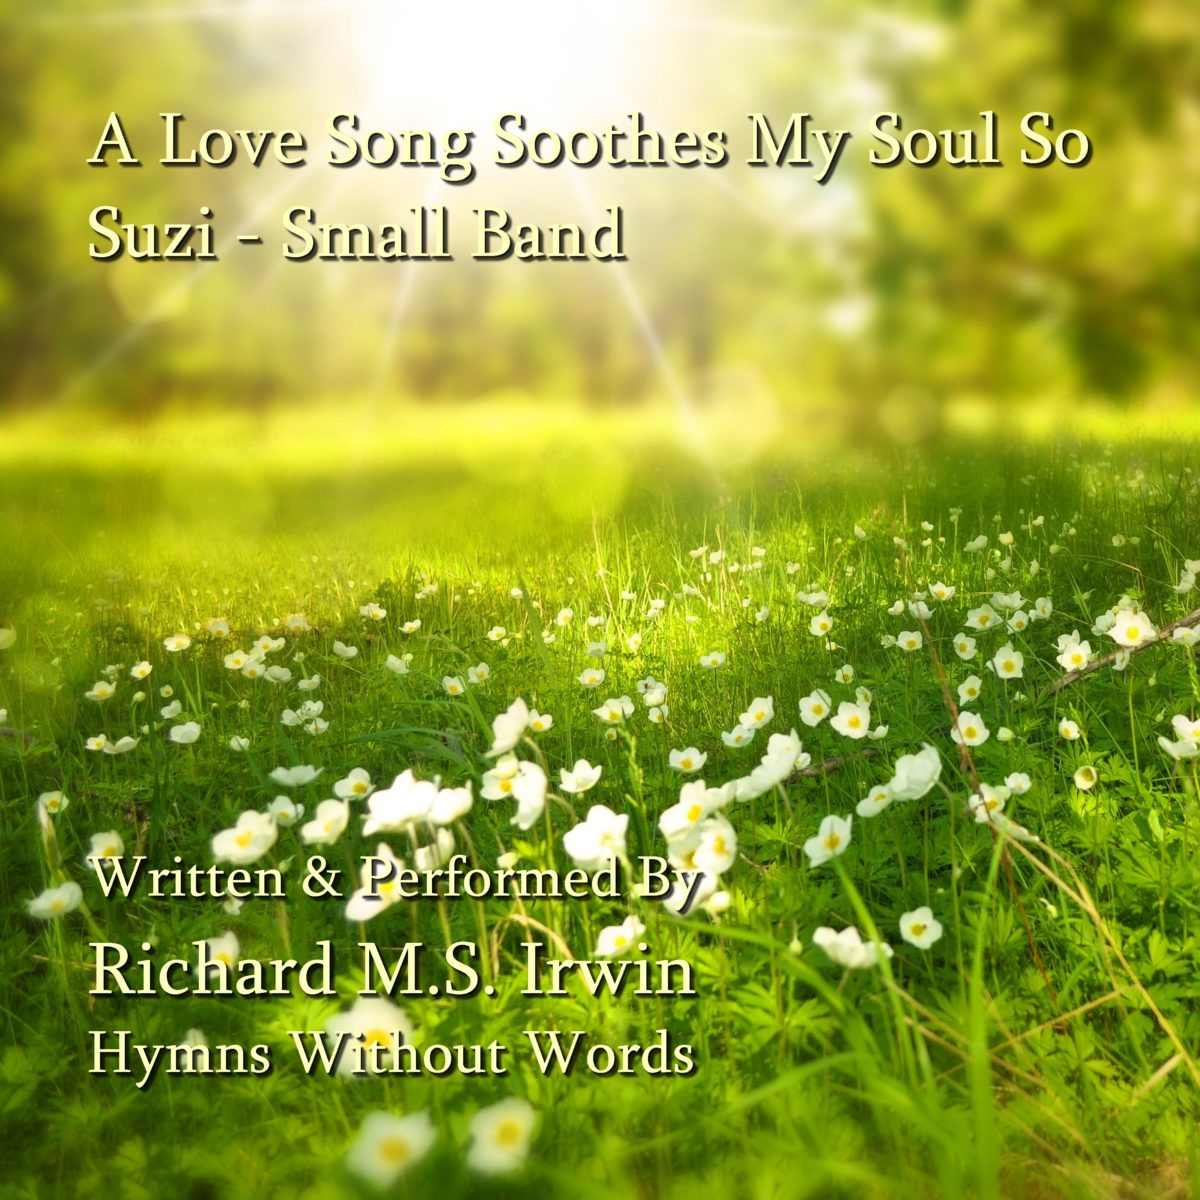 A Love Song Soothes My Soul So (Suzi) – Small Band